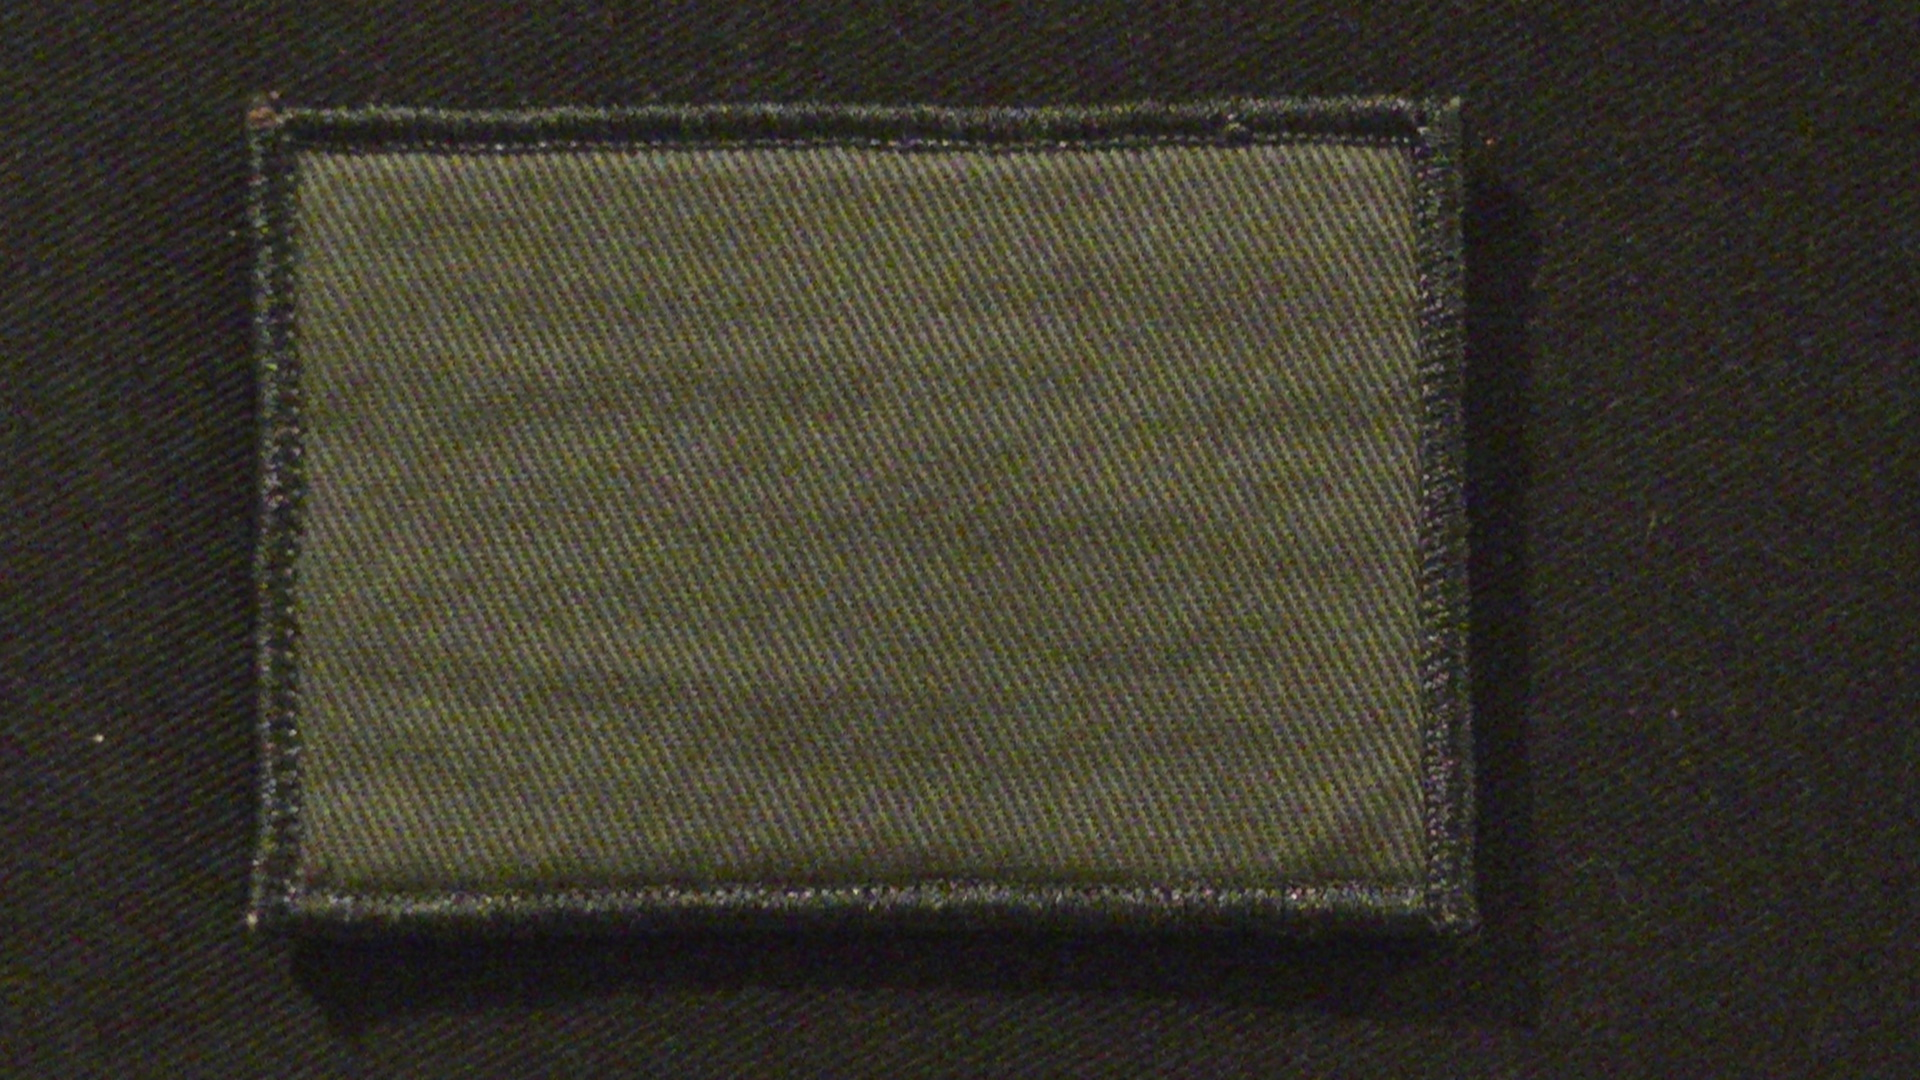 blank patch in Olive Drab